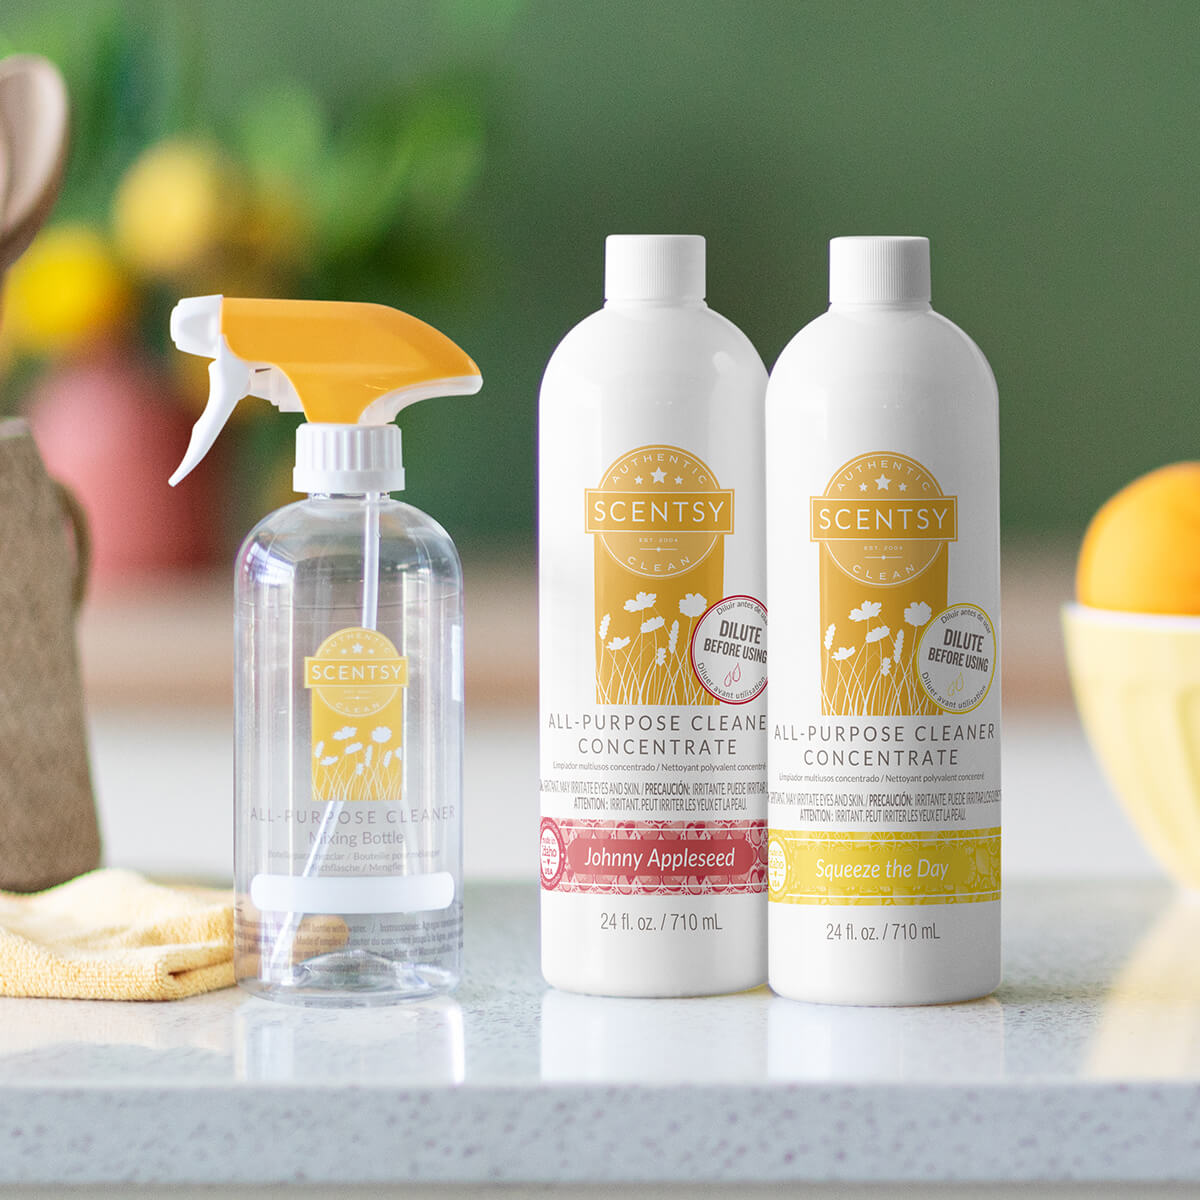 A clear Scentsy mixing bottle and two All-Purpose Cleaner Concentrates in Johnny Appleseed and Sqeeze the Day sit on a daylit kitchen counter.